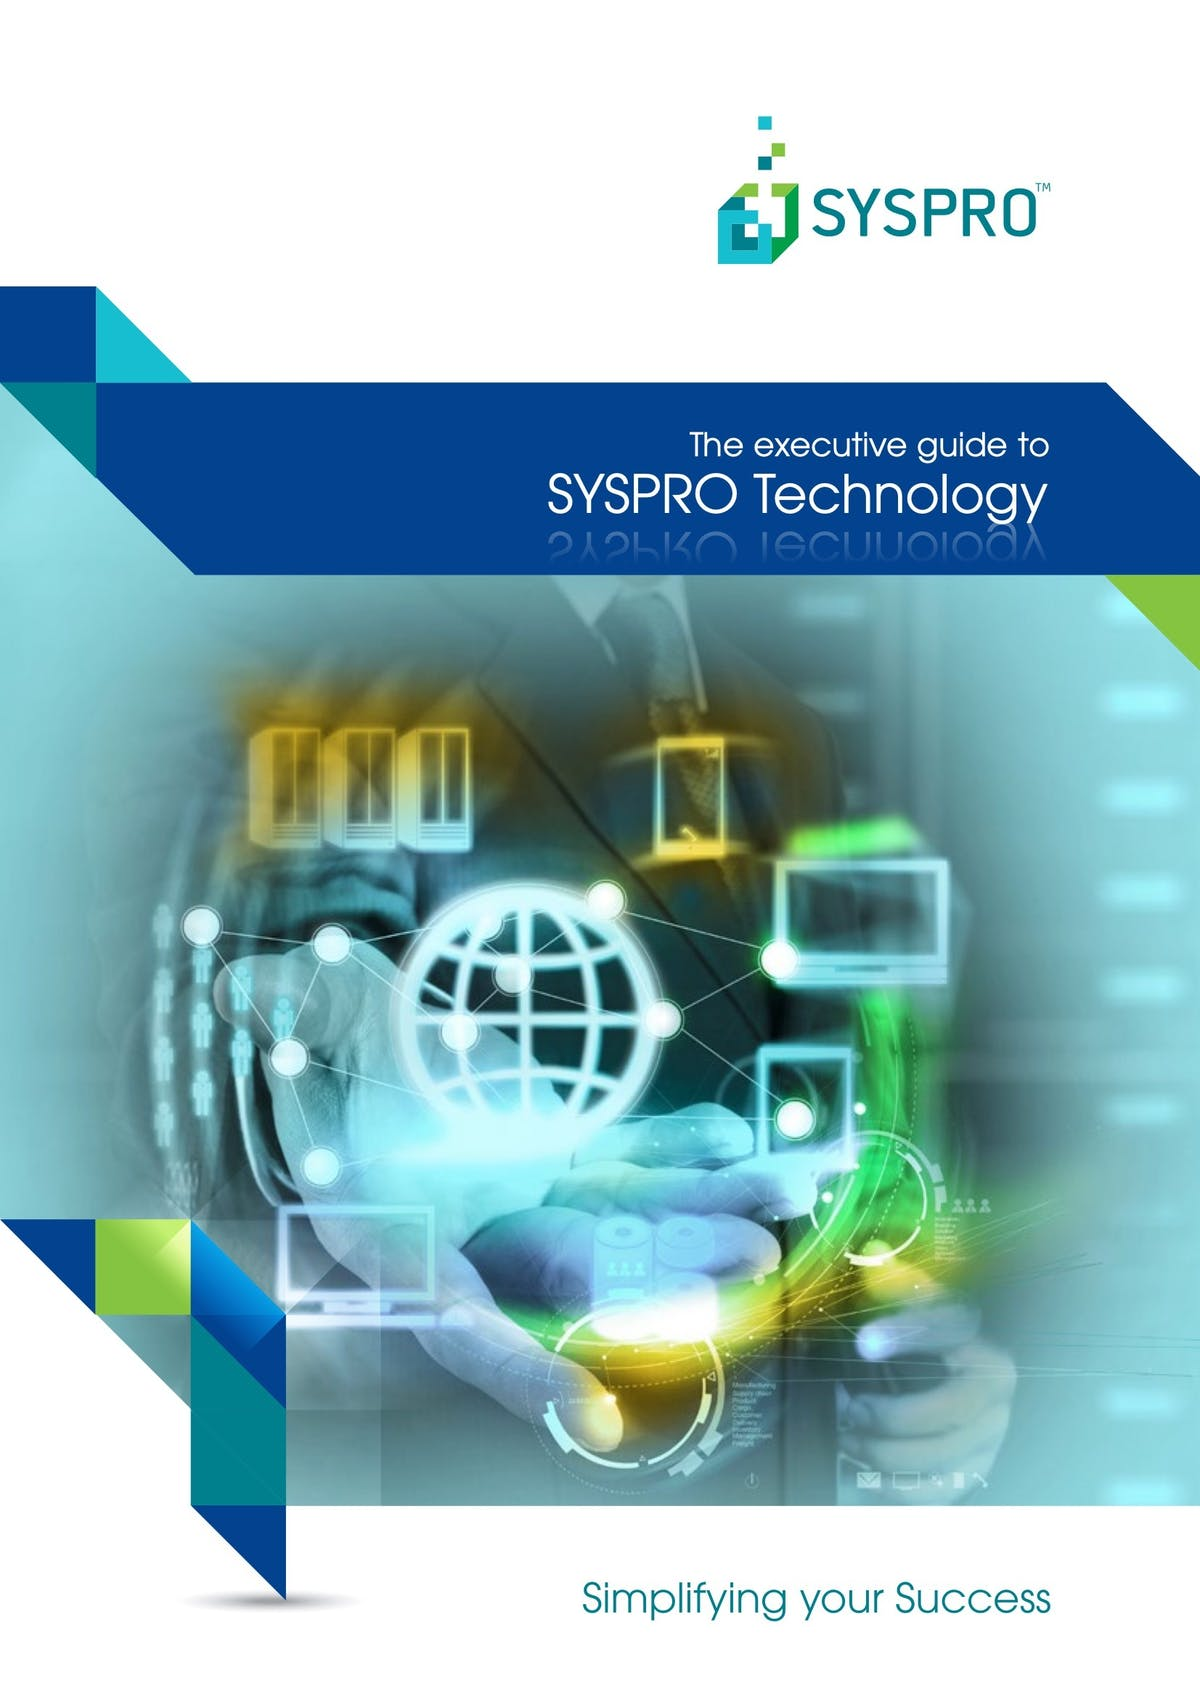 SYSPRO White Paper - The Executive Guide to SYSPRO Technology